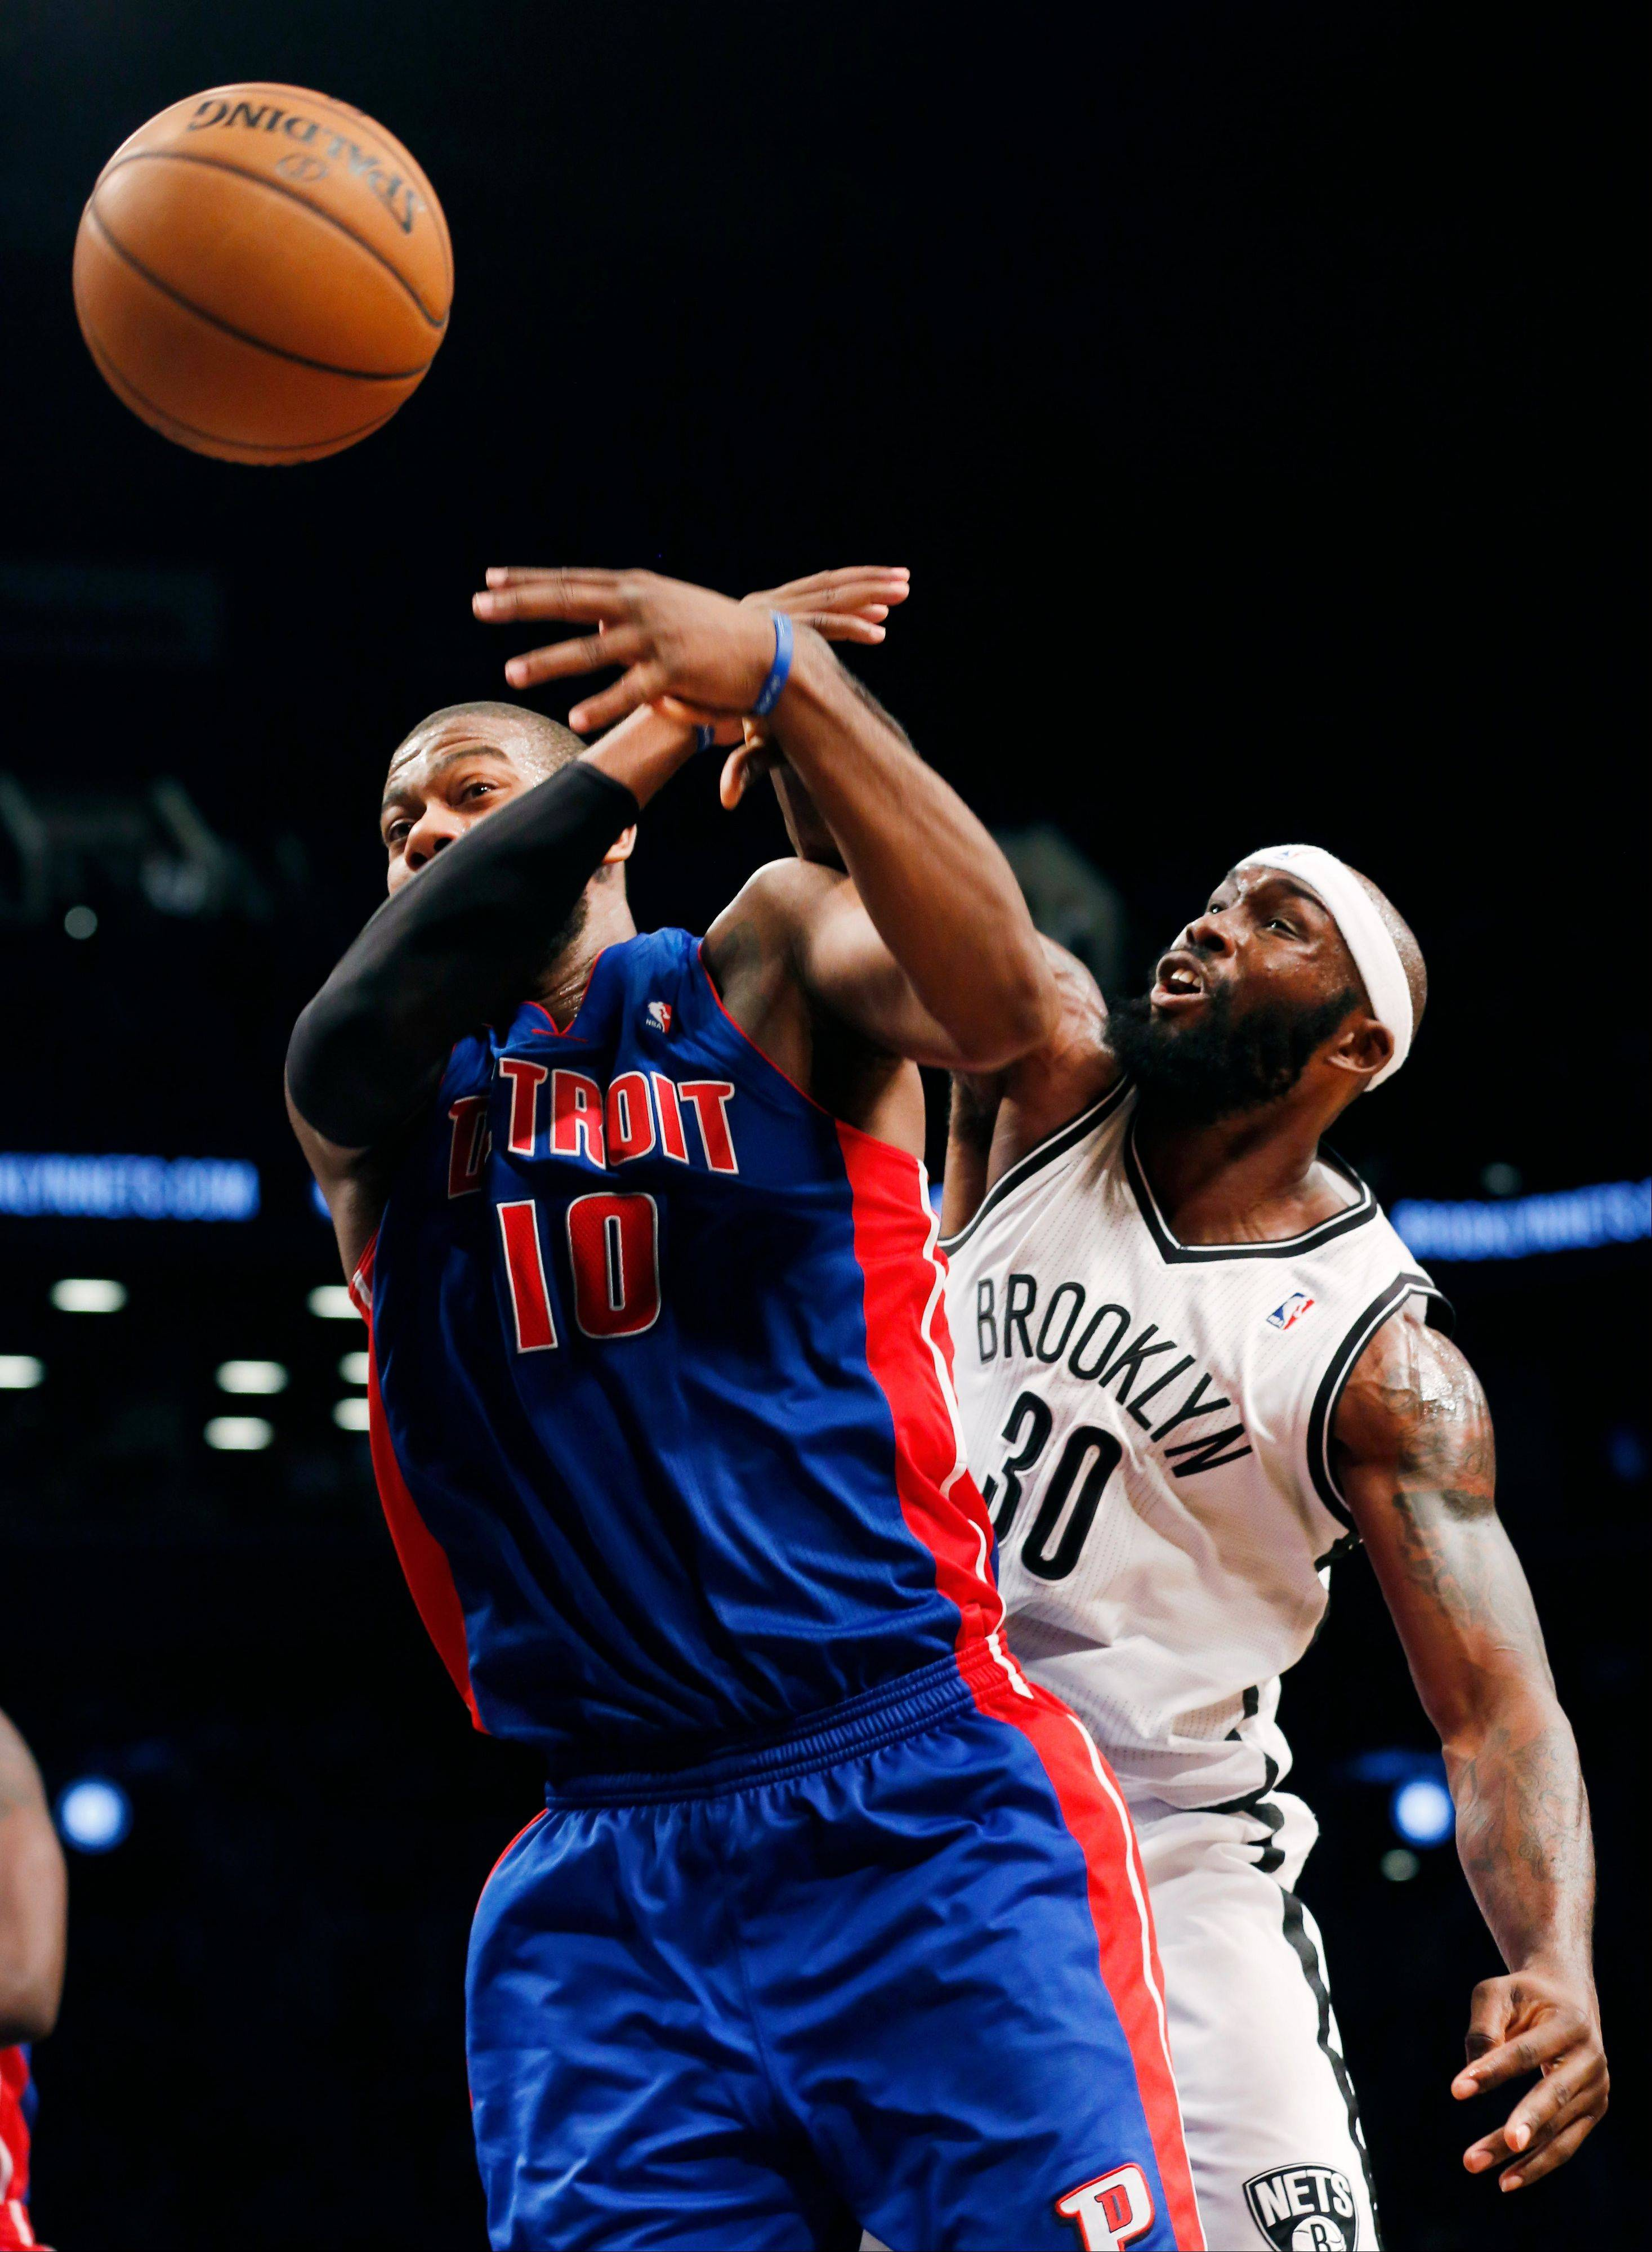 Pistons center Greg Monroe and the Nets� Keith Bogans battle for a rebound during Brooklyn�s 107-105 double overtime victory Friday night. Bogans will see his old team tonight when he returns to the United Center to take on the Bulls.